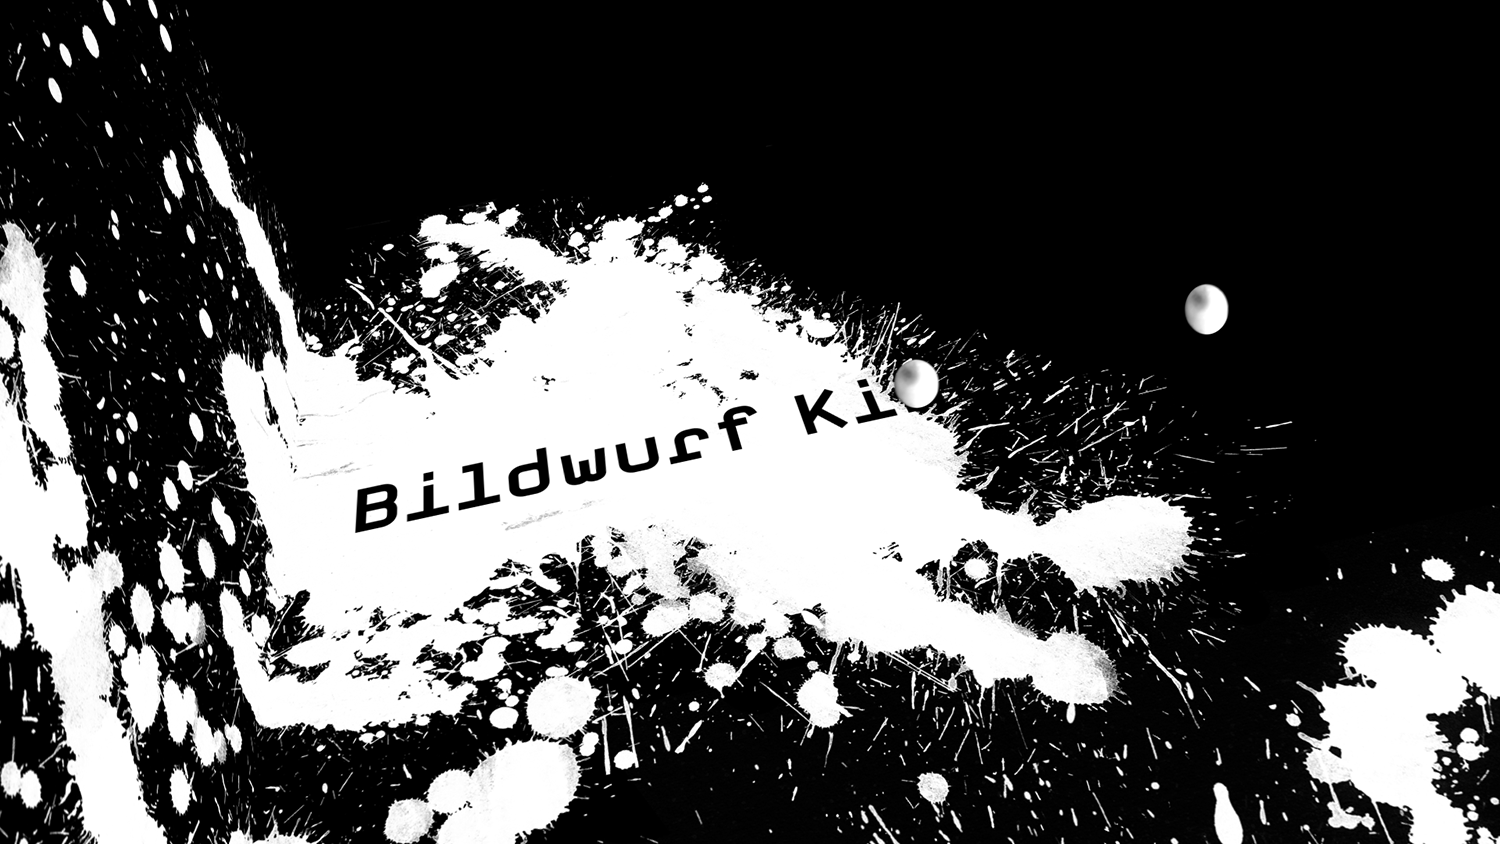 BWURF_09_4.png